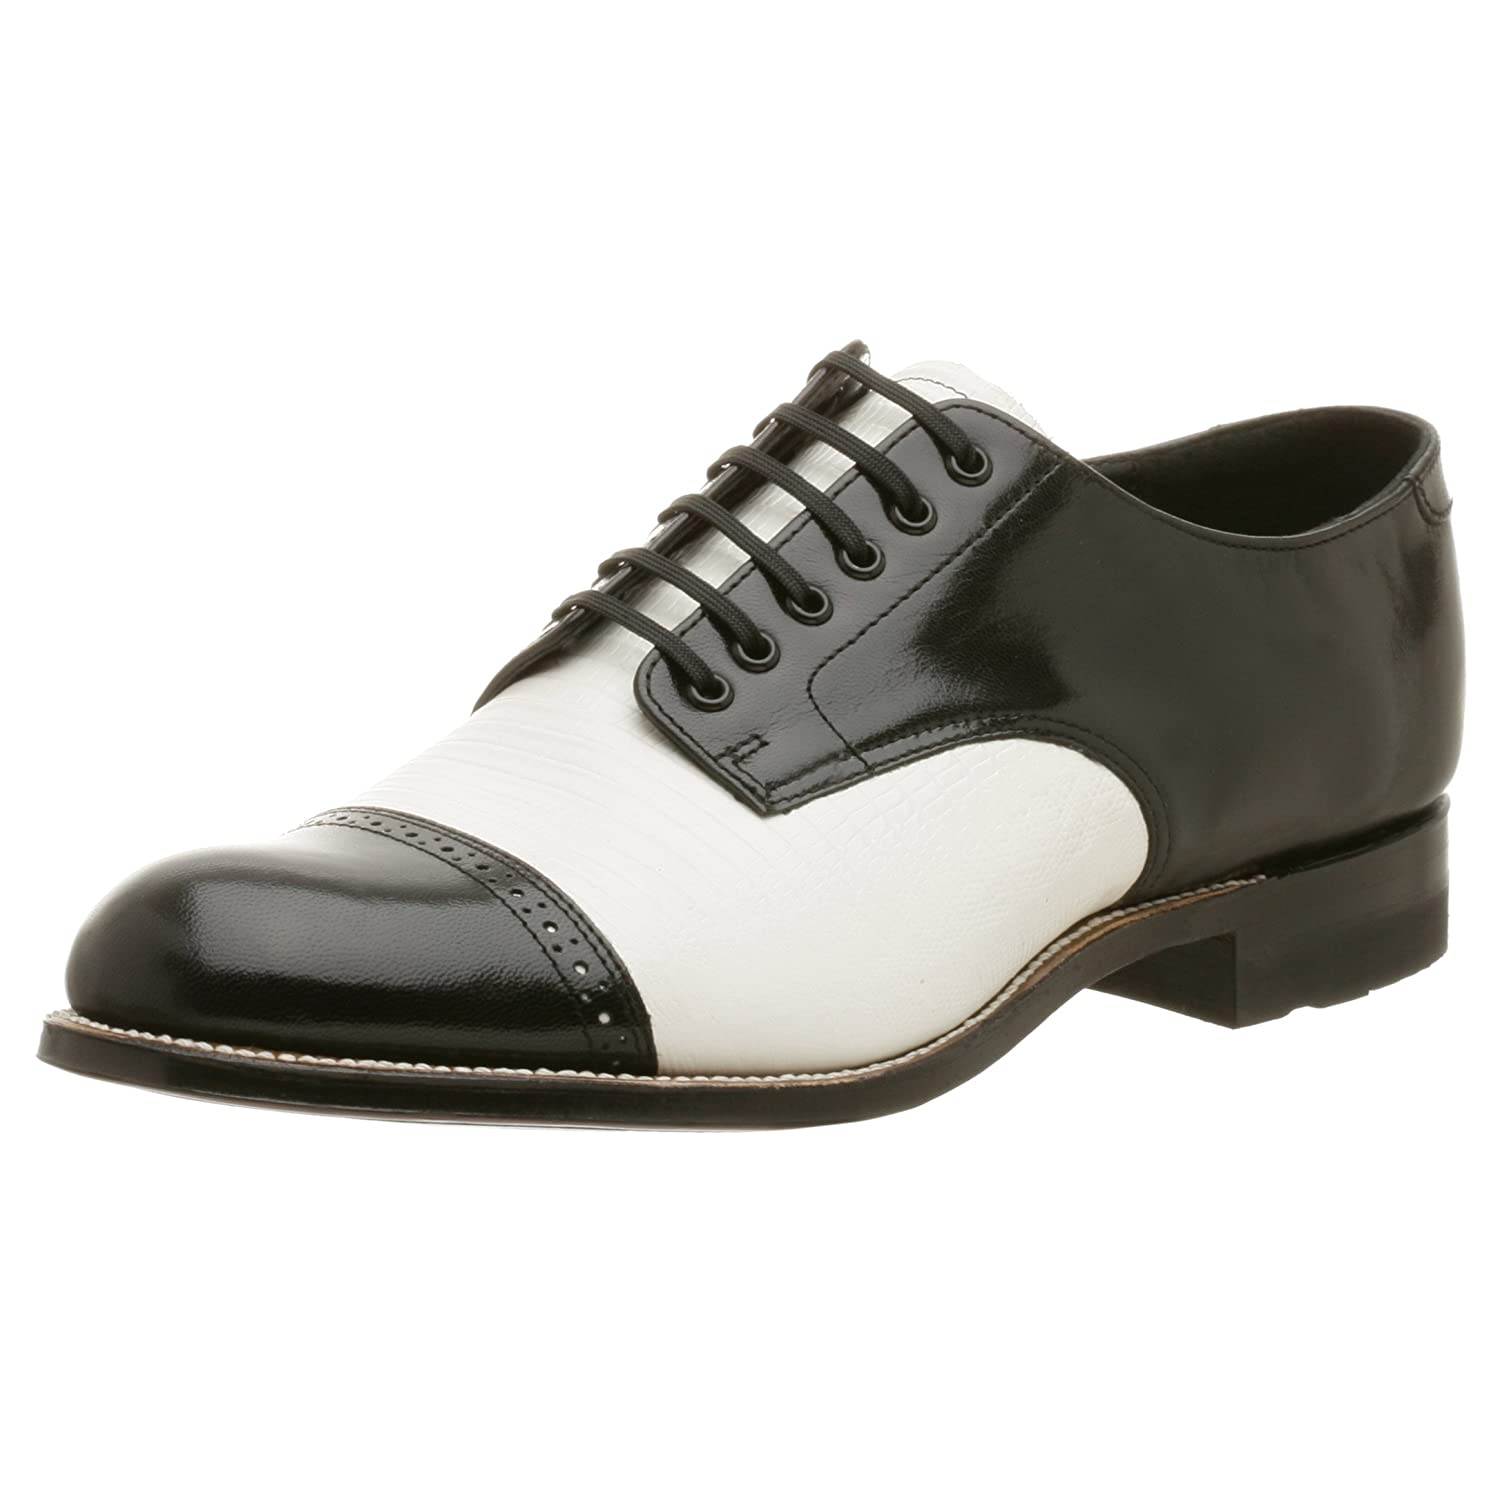 1940s Mens Shoes | Gangster, Spectator, Black and White Shoes Stacy Adams Mens Madison Lizard Print Oxford $129.95 AT vintagedancer.com